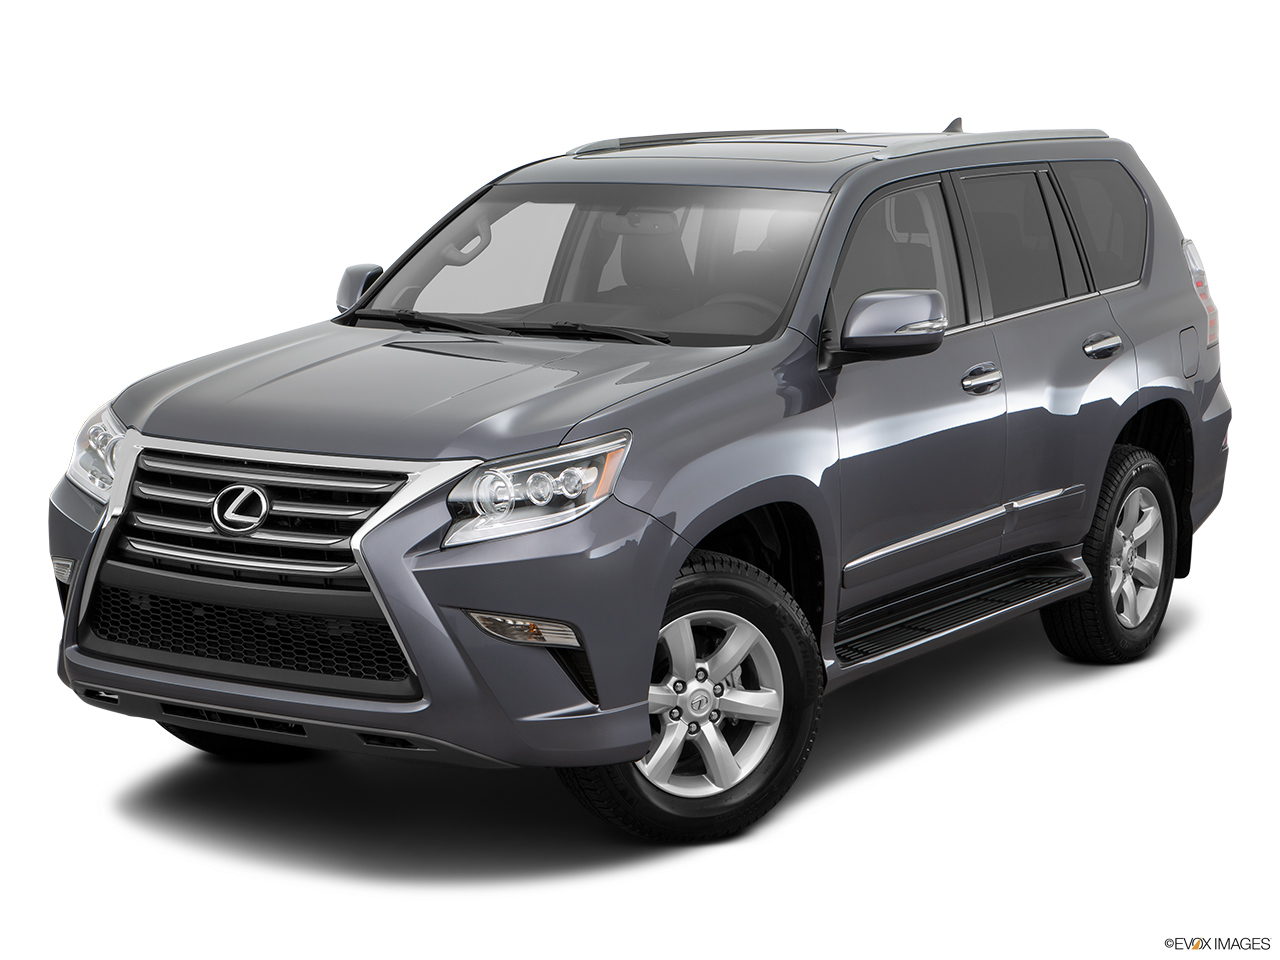 gx acura sale owner wi lexus cc by vs mdx near for information of mequon contact